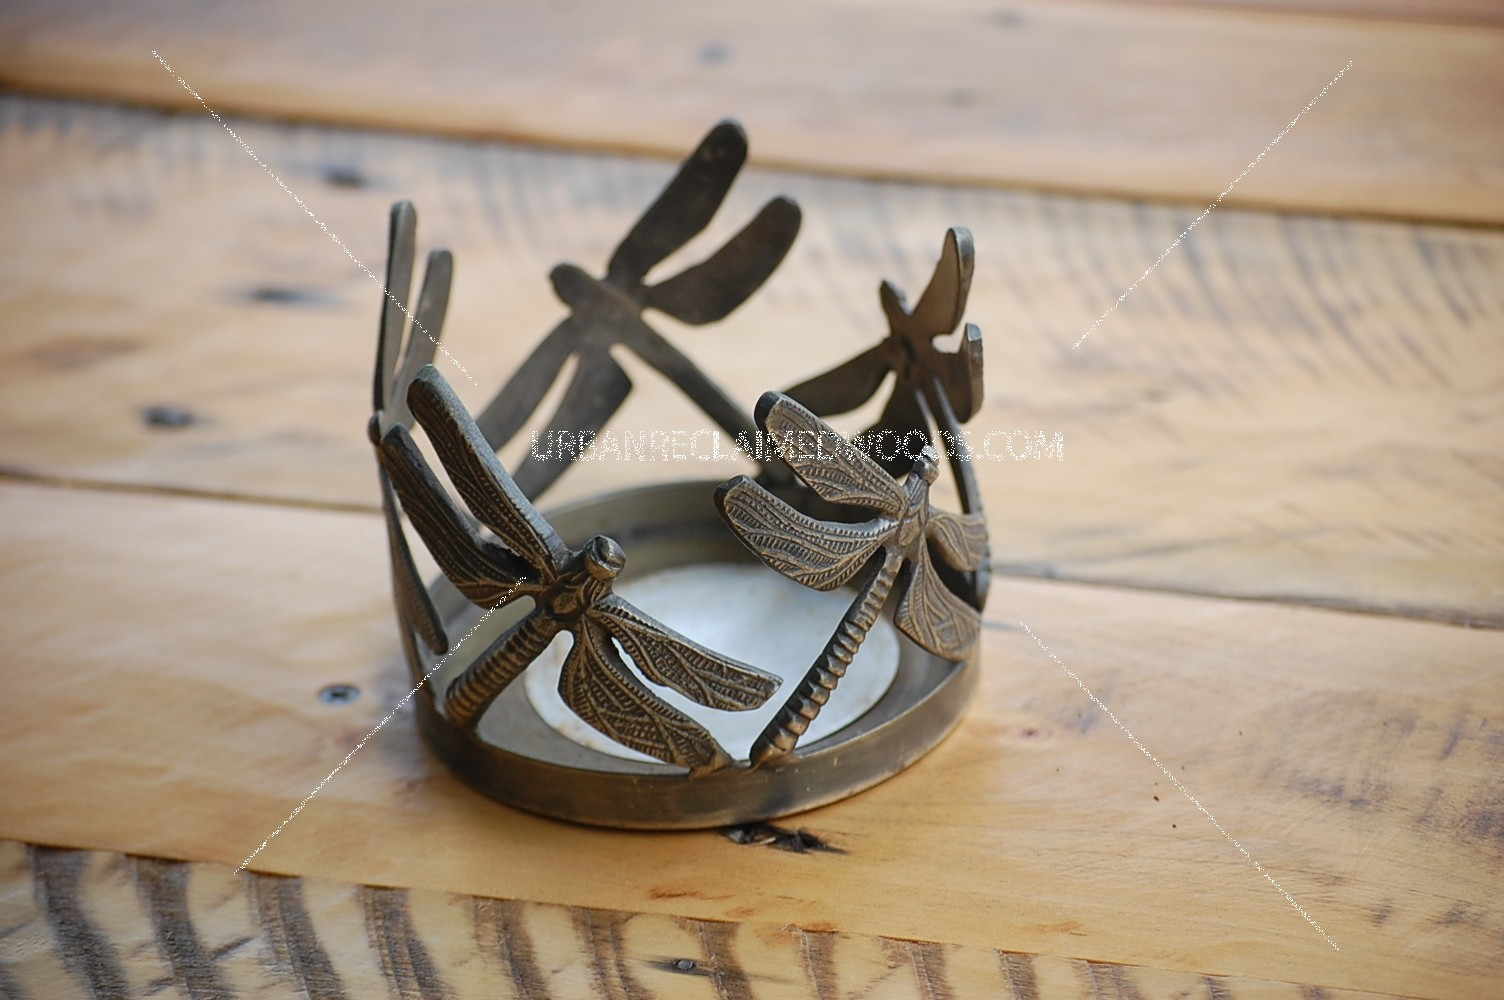 Dragonfly candle holder - metal, pewter color